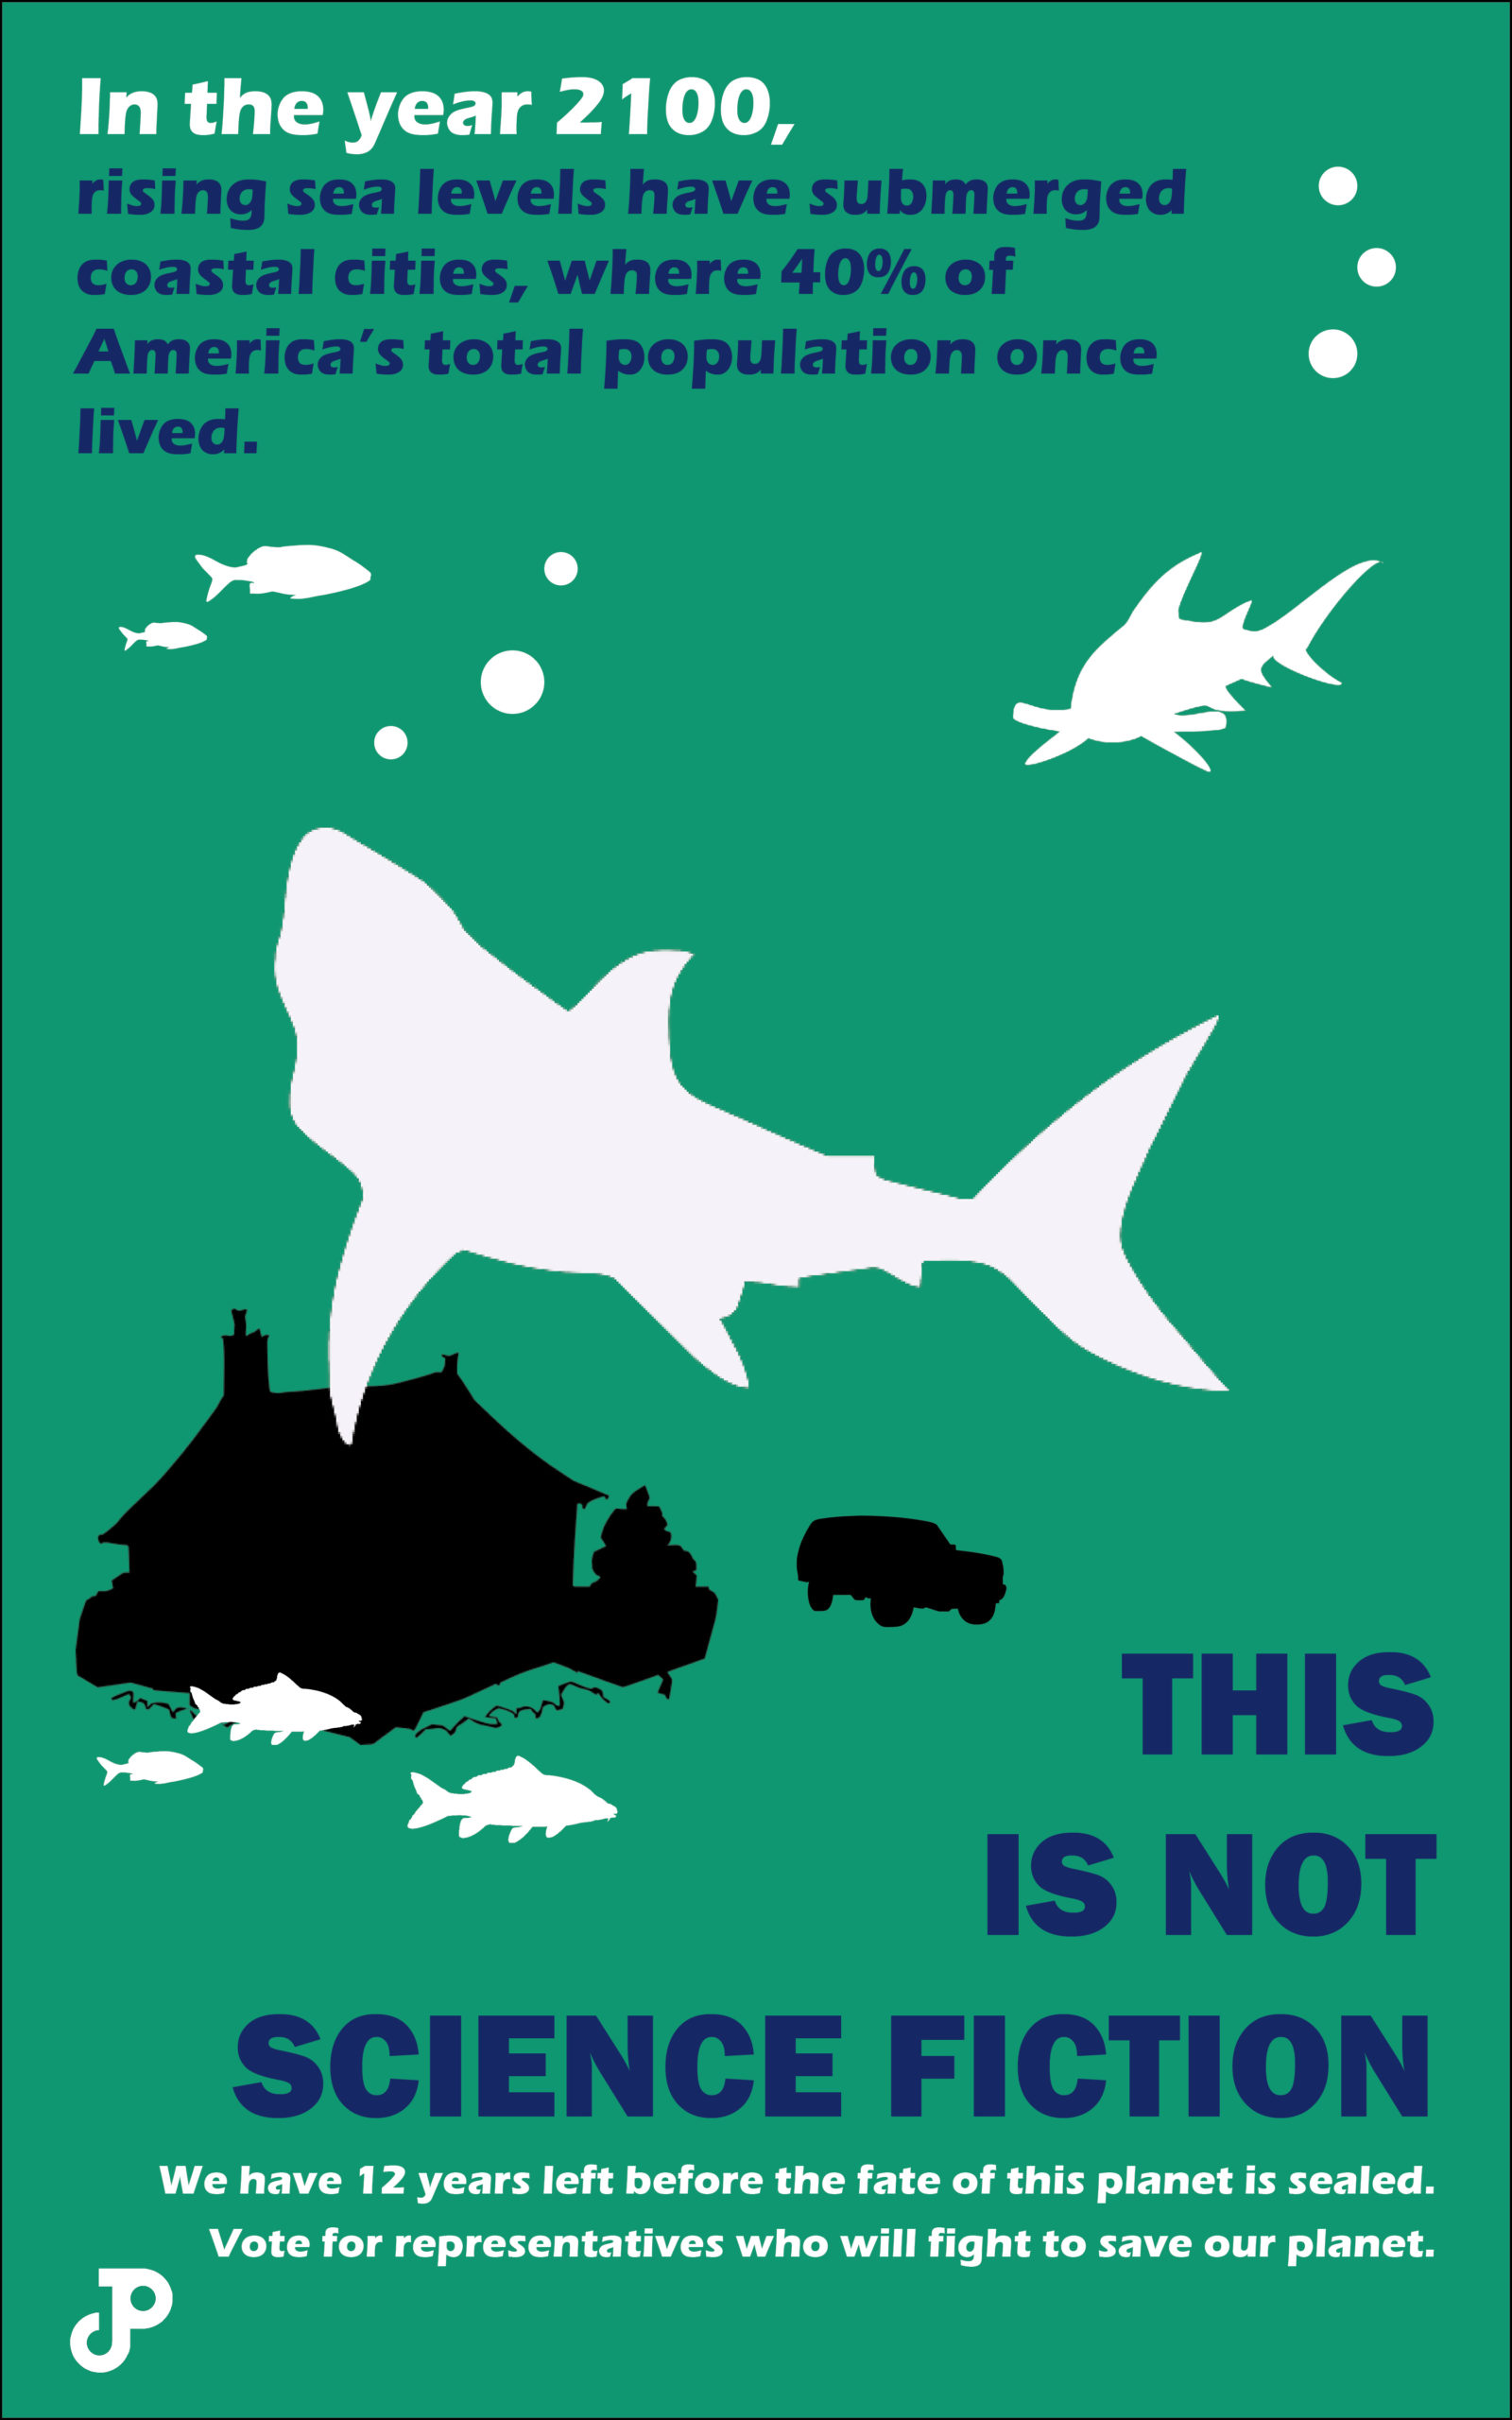 a poster with an illustration of sharks and fish swimming around a submerged home. The text reads, in the year 2100, rising sea levels have submerged coastal cities, where 40 percent of America's total population once lived. This is not science fiction. We have 12 years left before the fate of this planet is sealed. Vote for representatives who will fight to save our planet.